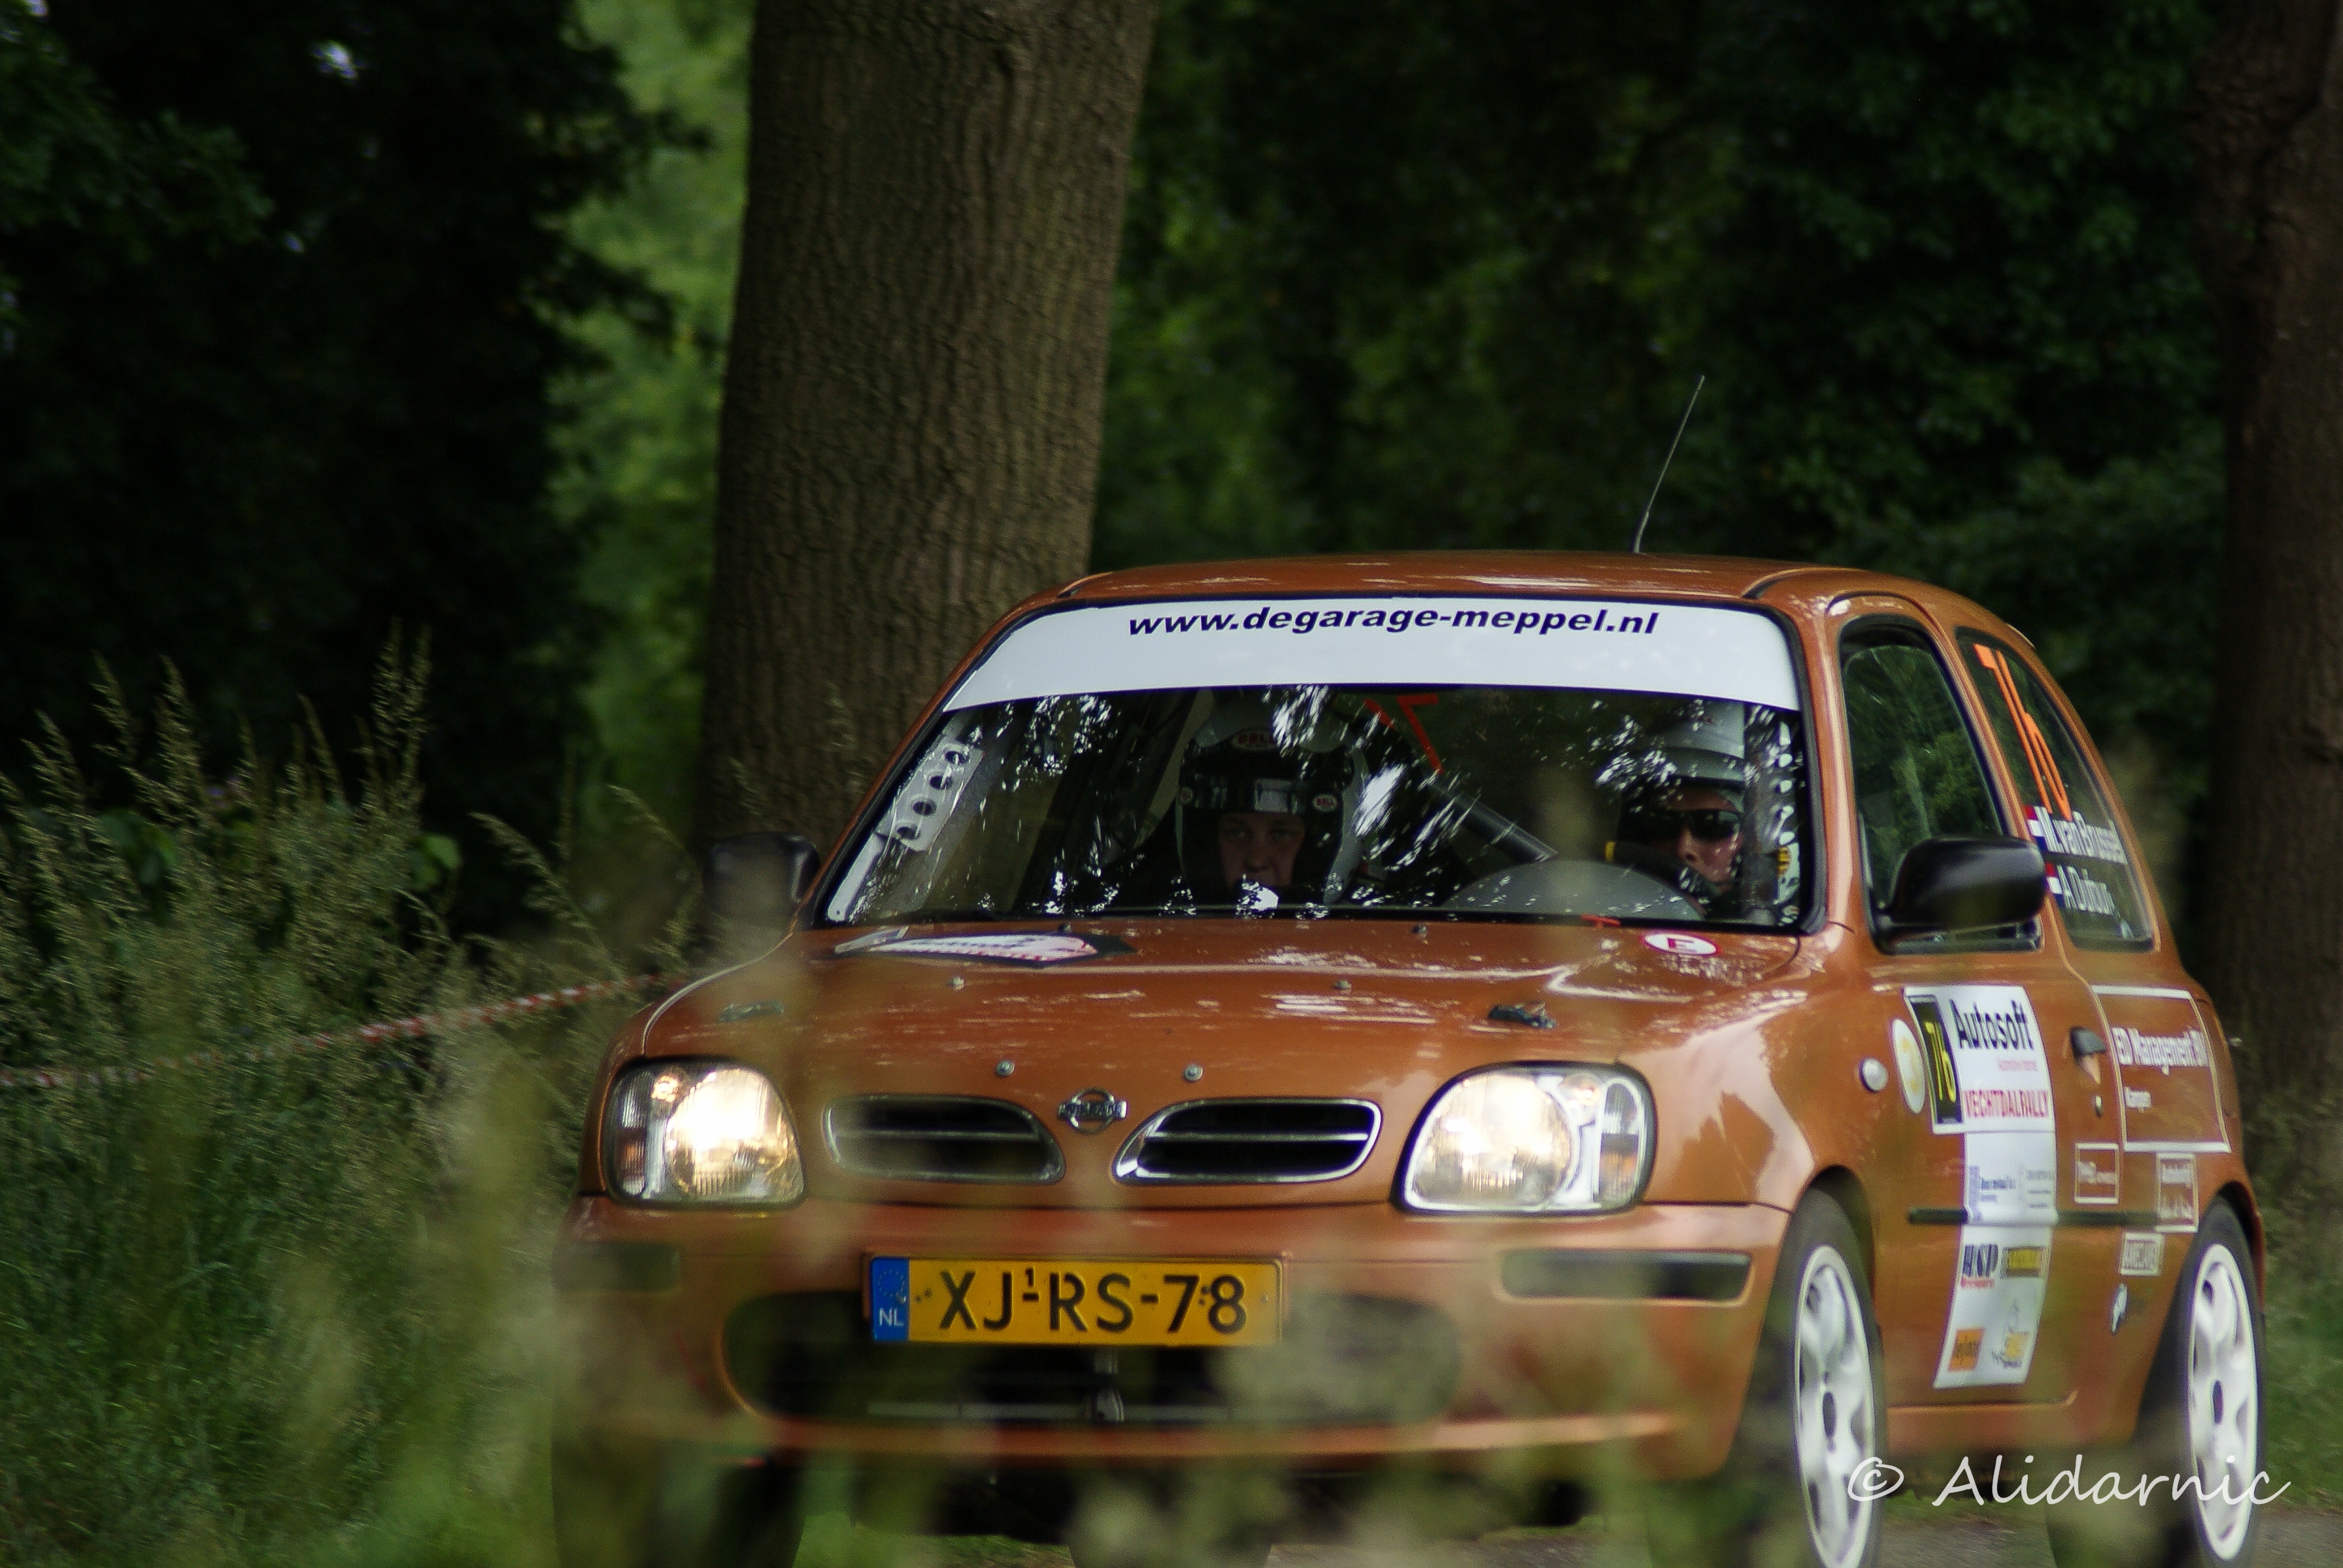 '15-06-20 Vechtdalrally